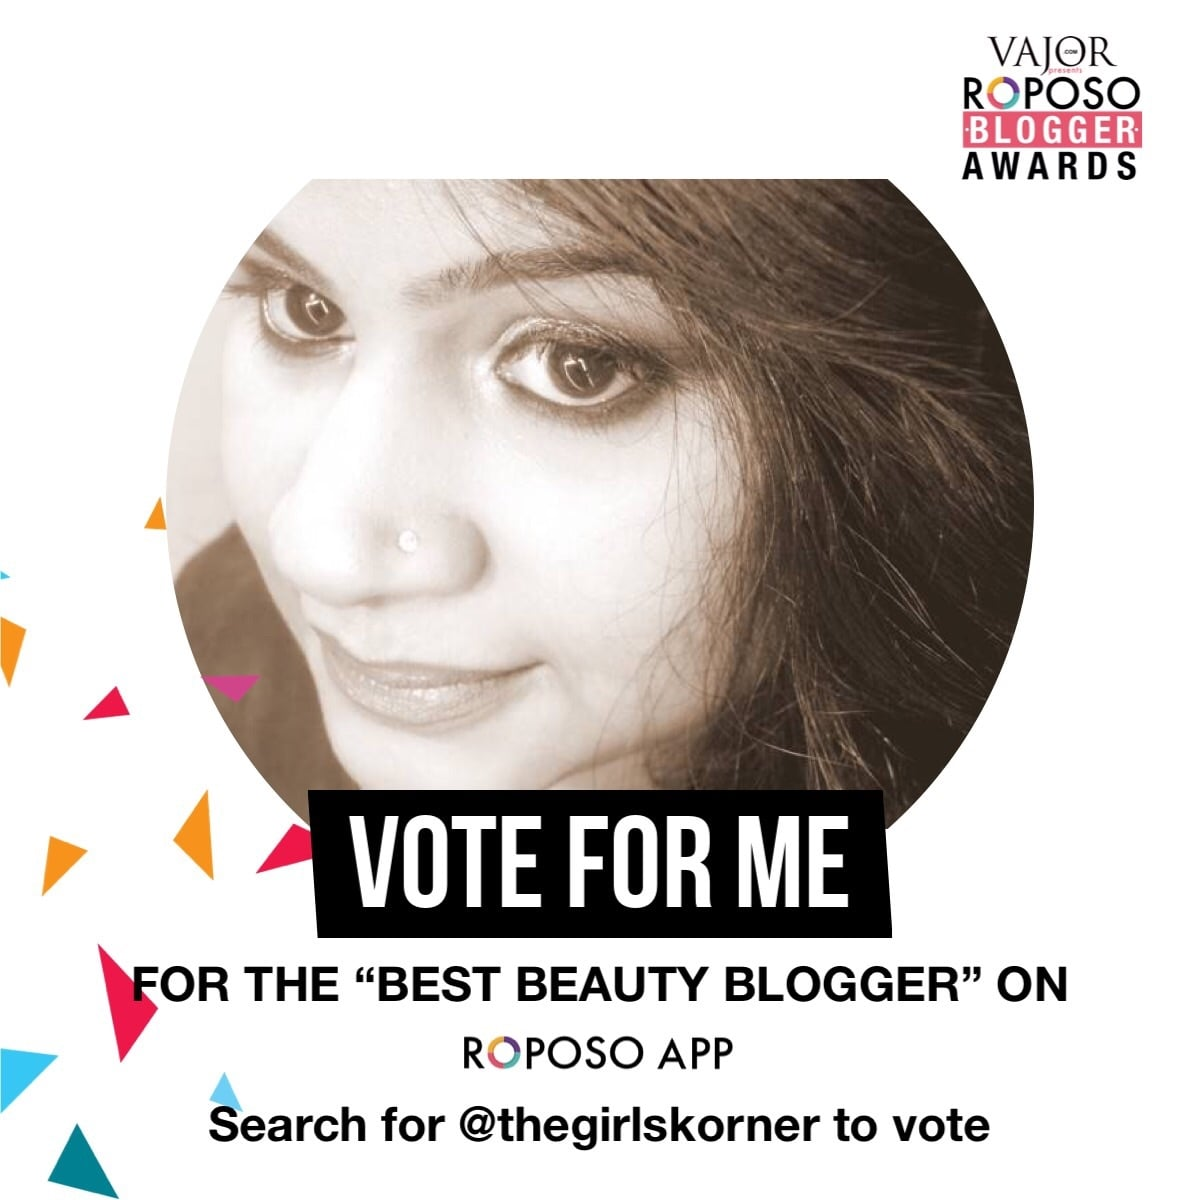 Show your support by clicking on vote 🙂